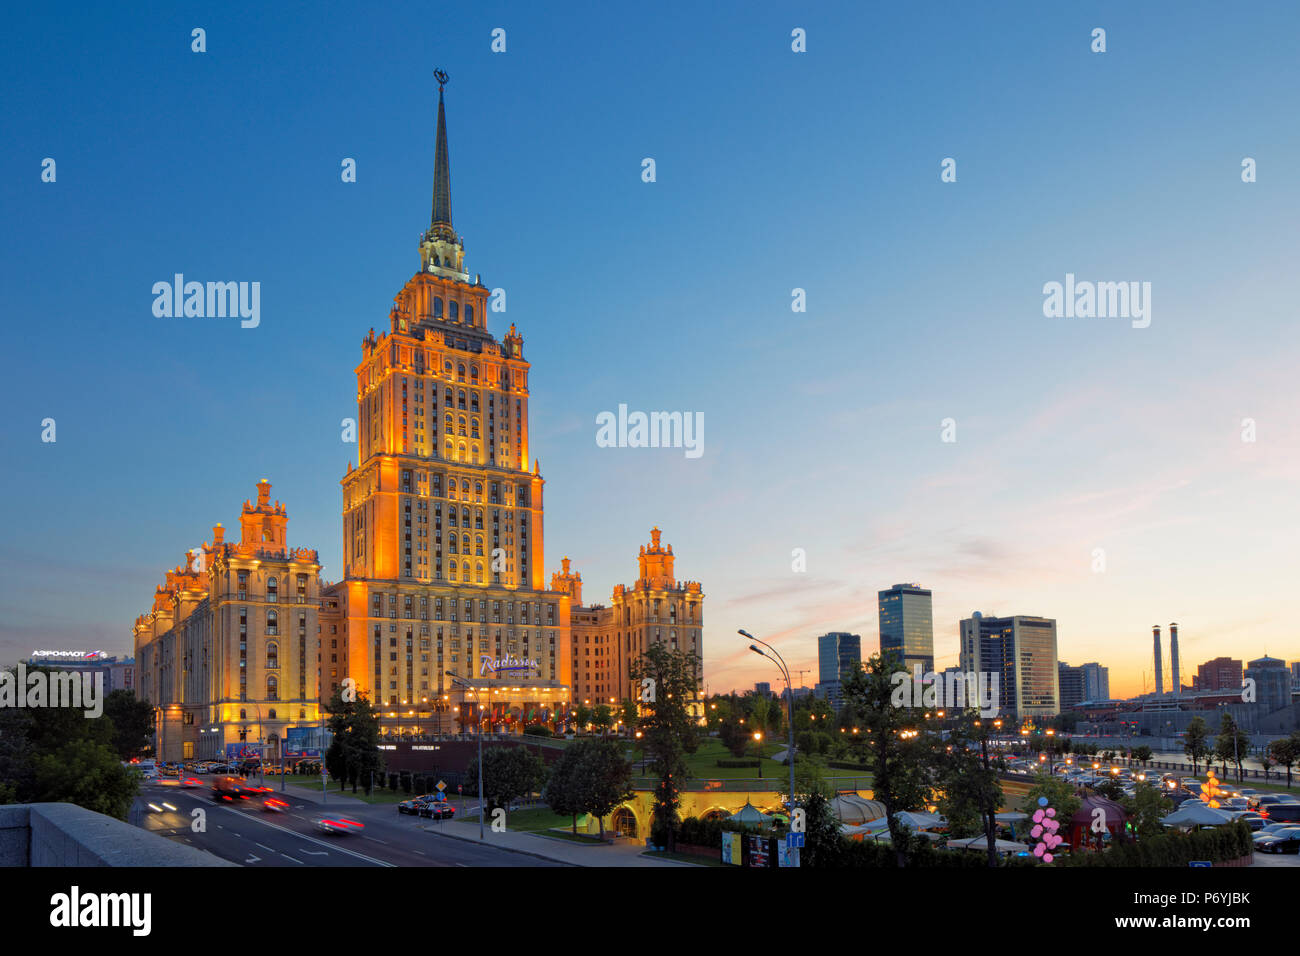 Radisson Royal Hotel Stalinist style high-rise building illuminated at dusk. Moscow, Russia. - Stock Image